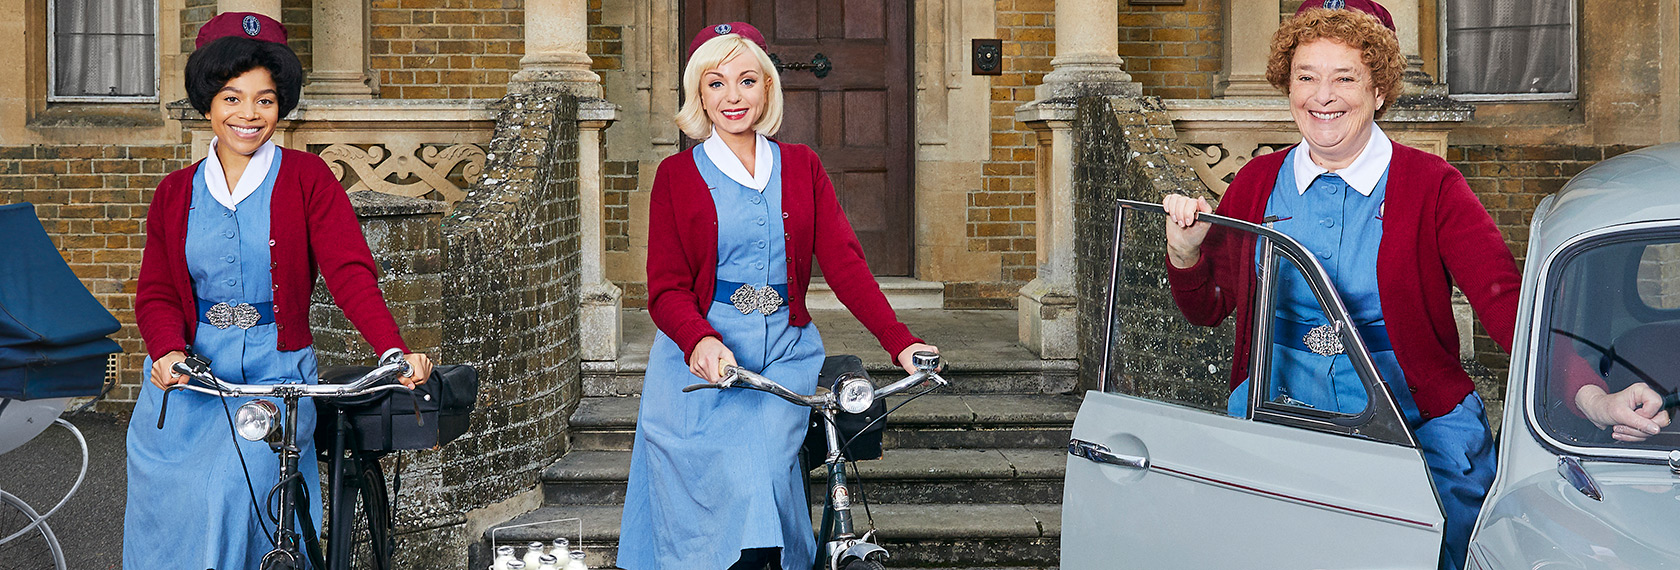 Call the Midwife X - lg slider